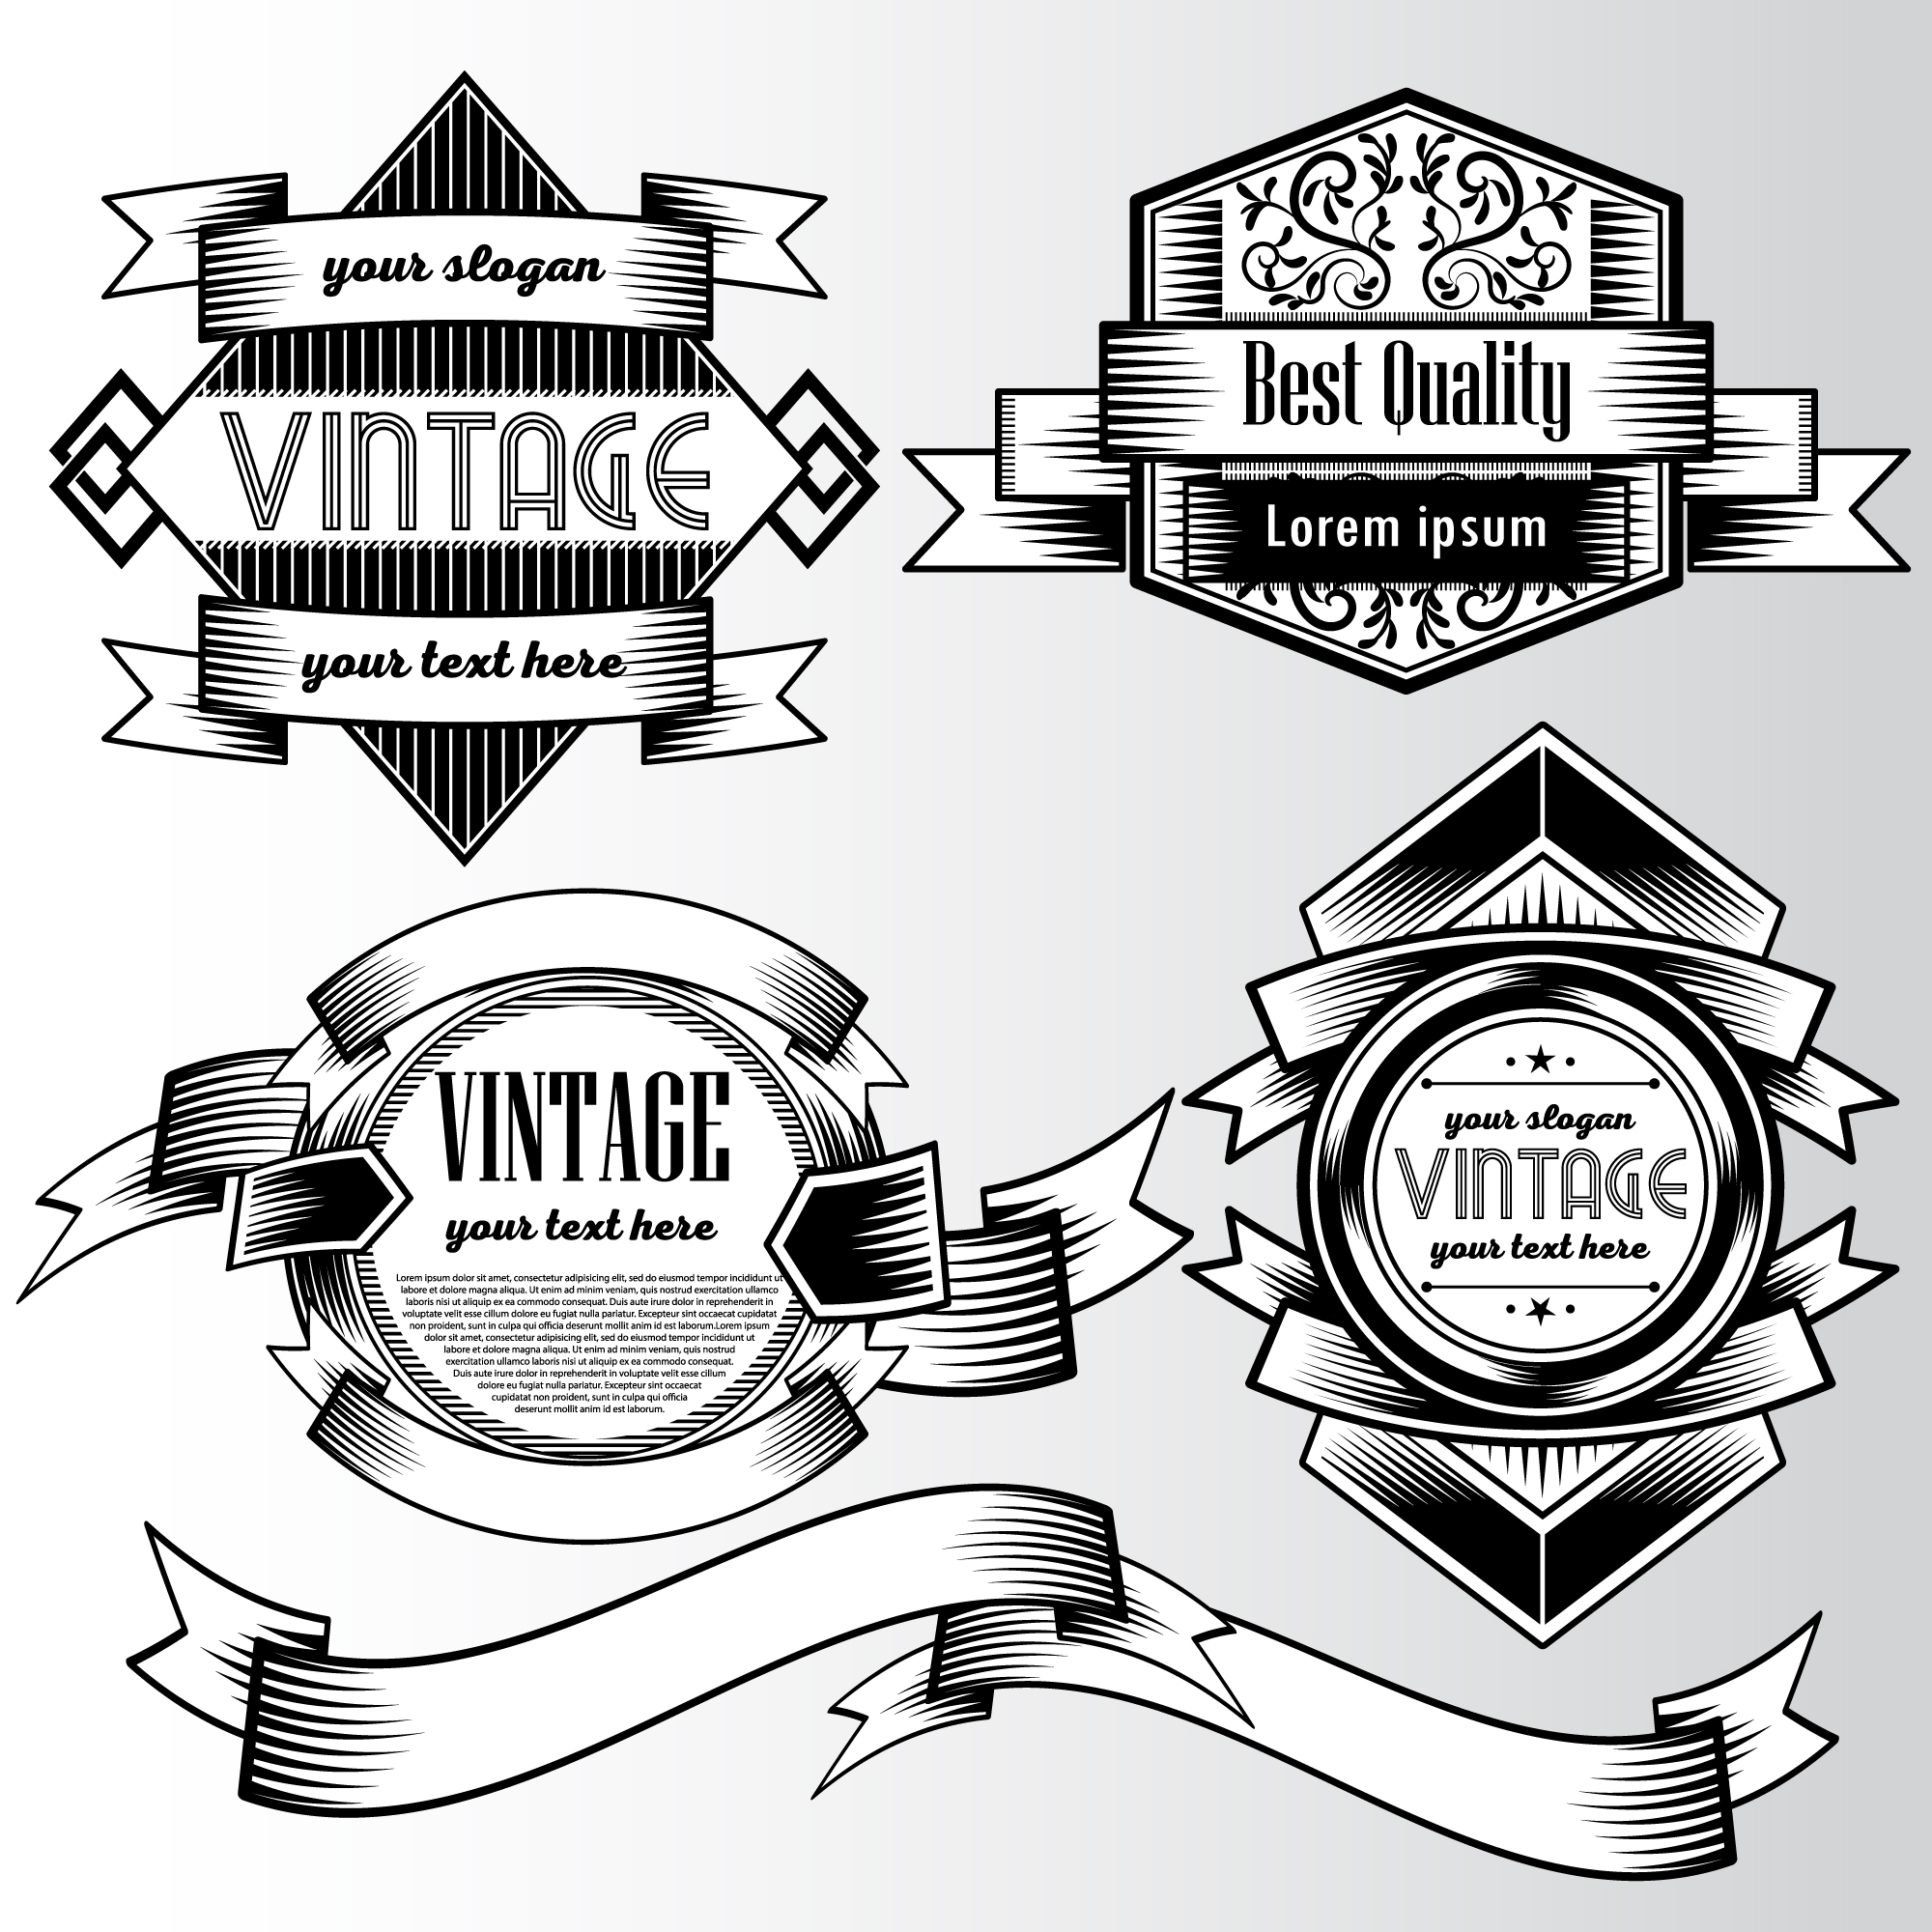 Black and white logo with ribbons